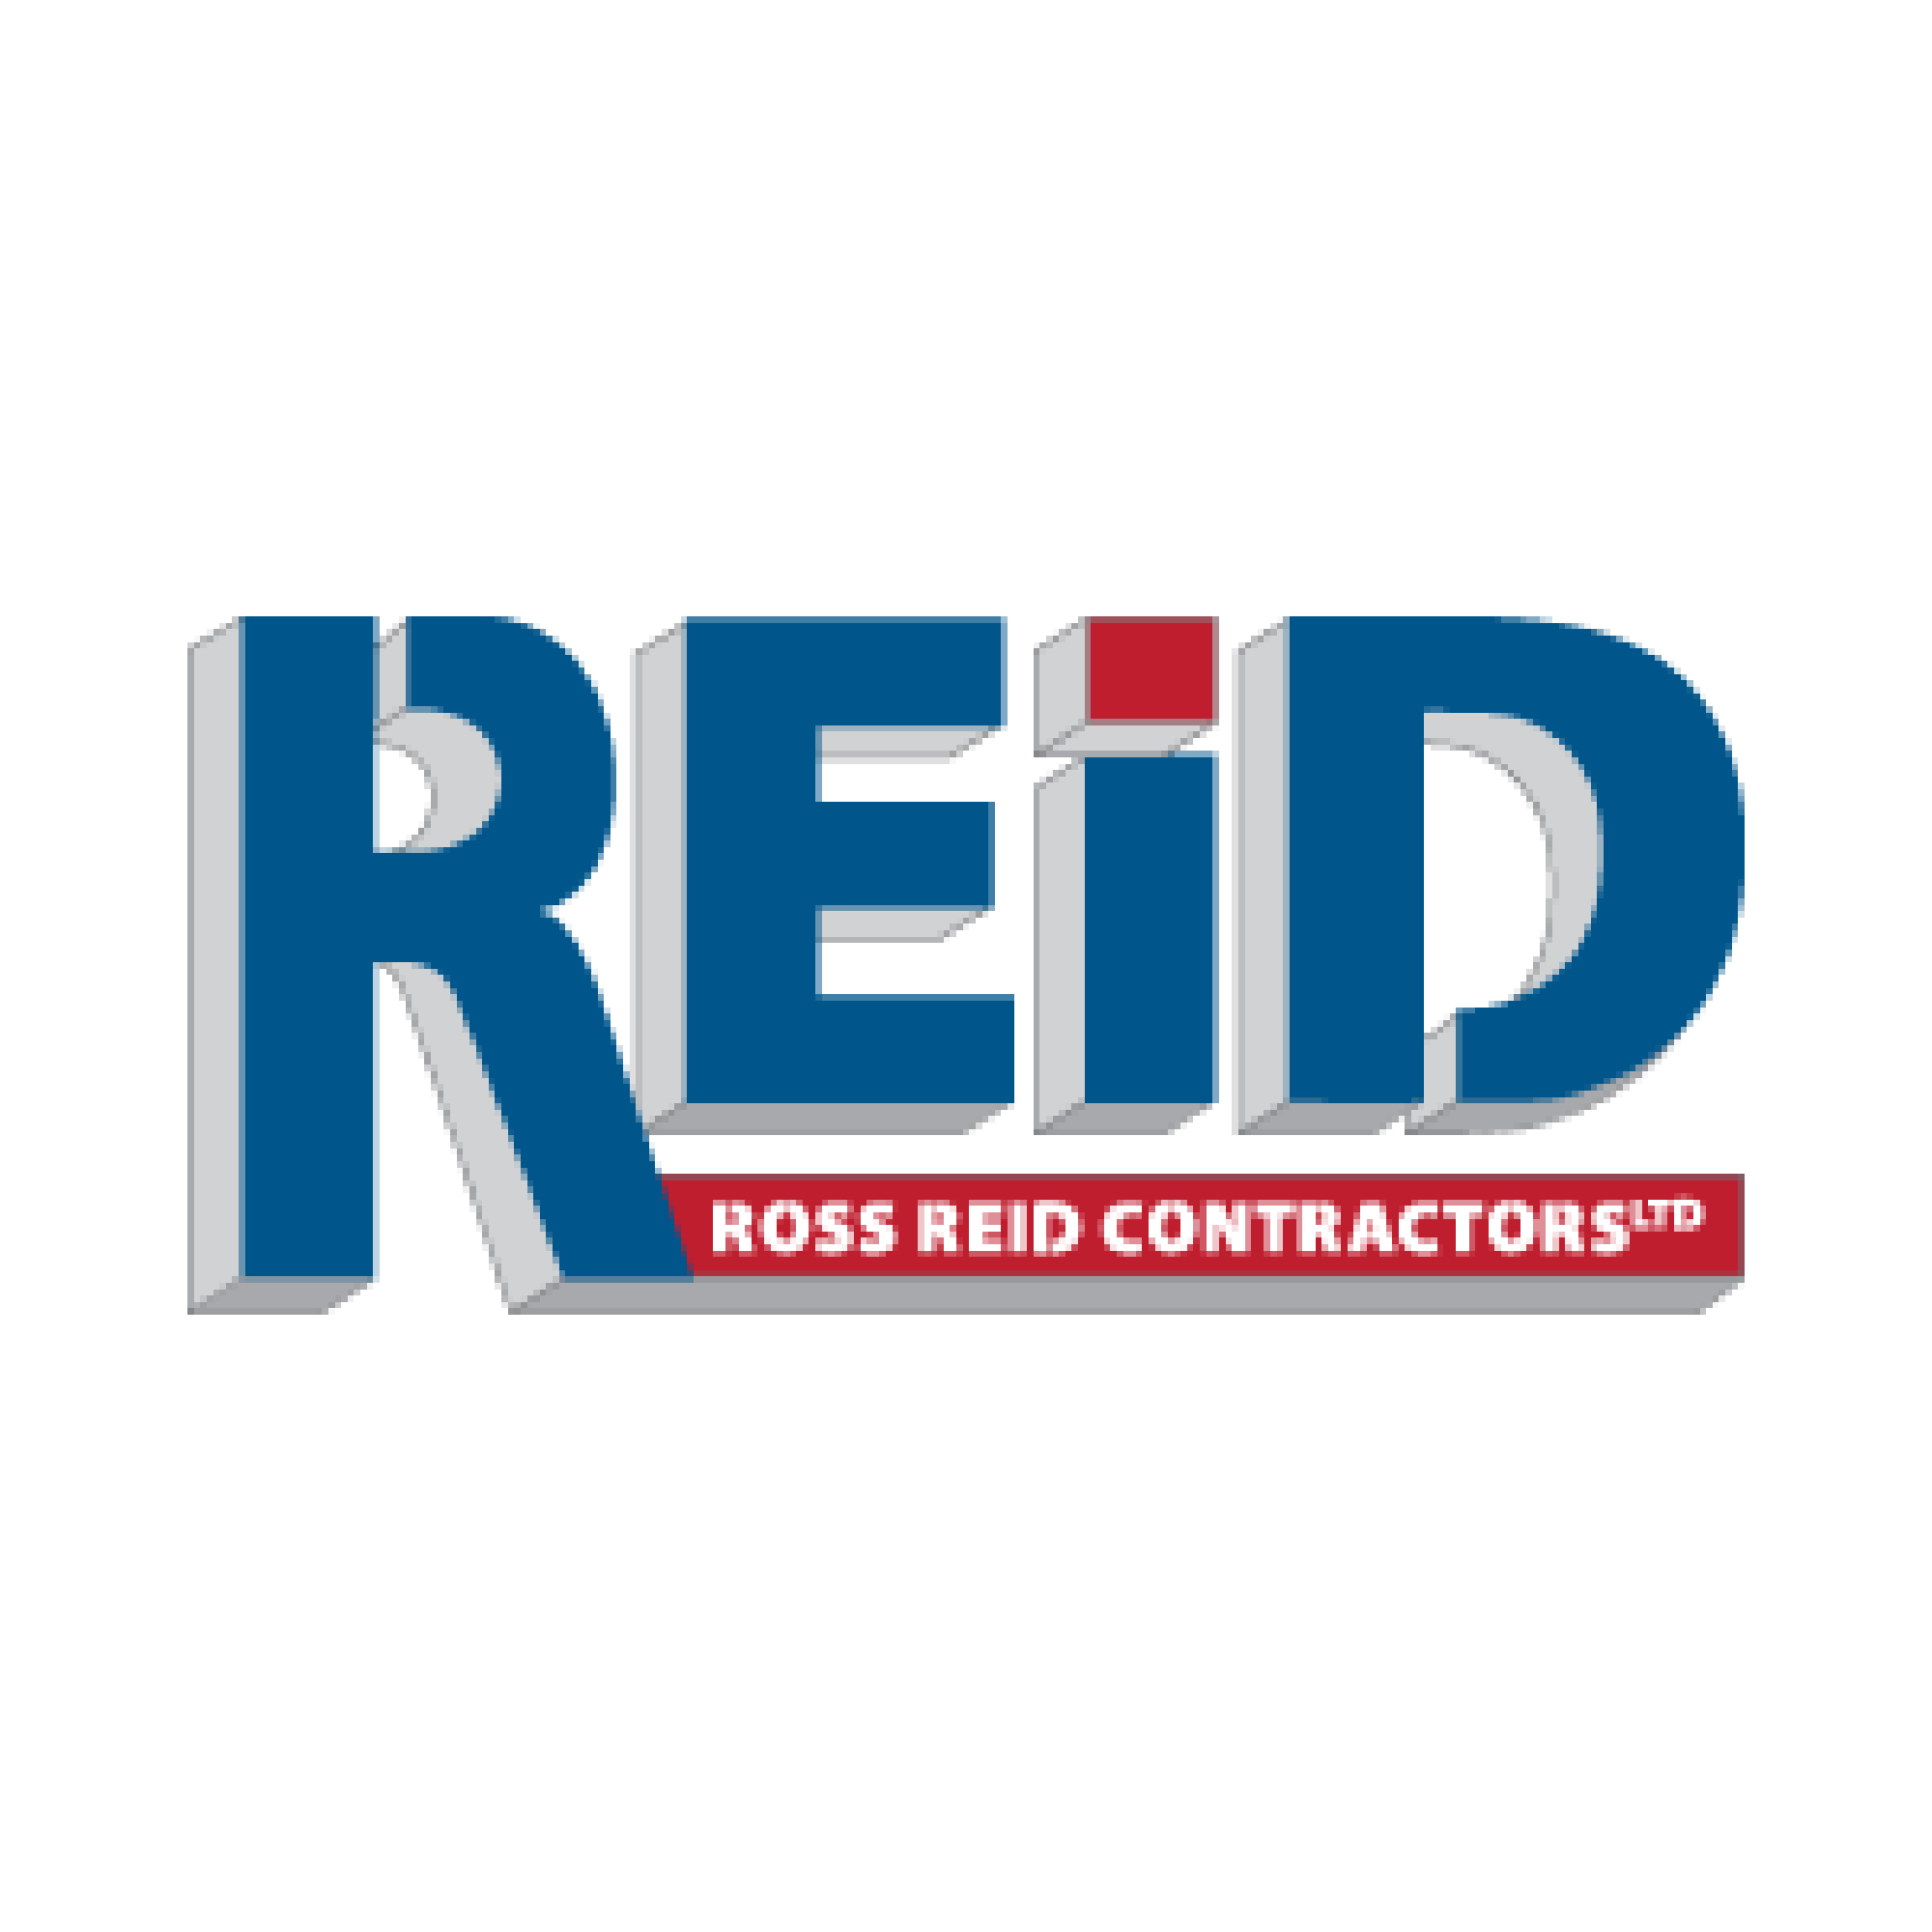 Ross Reid use Fleet Agent